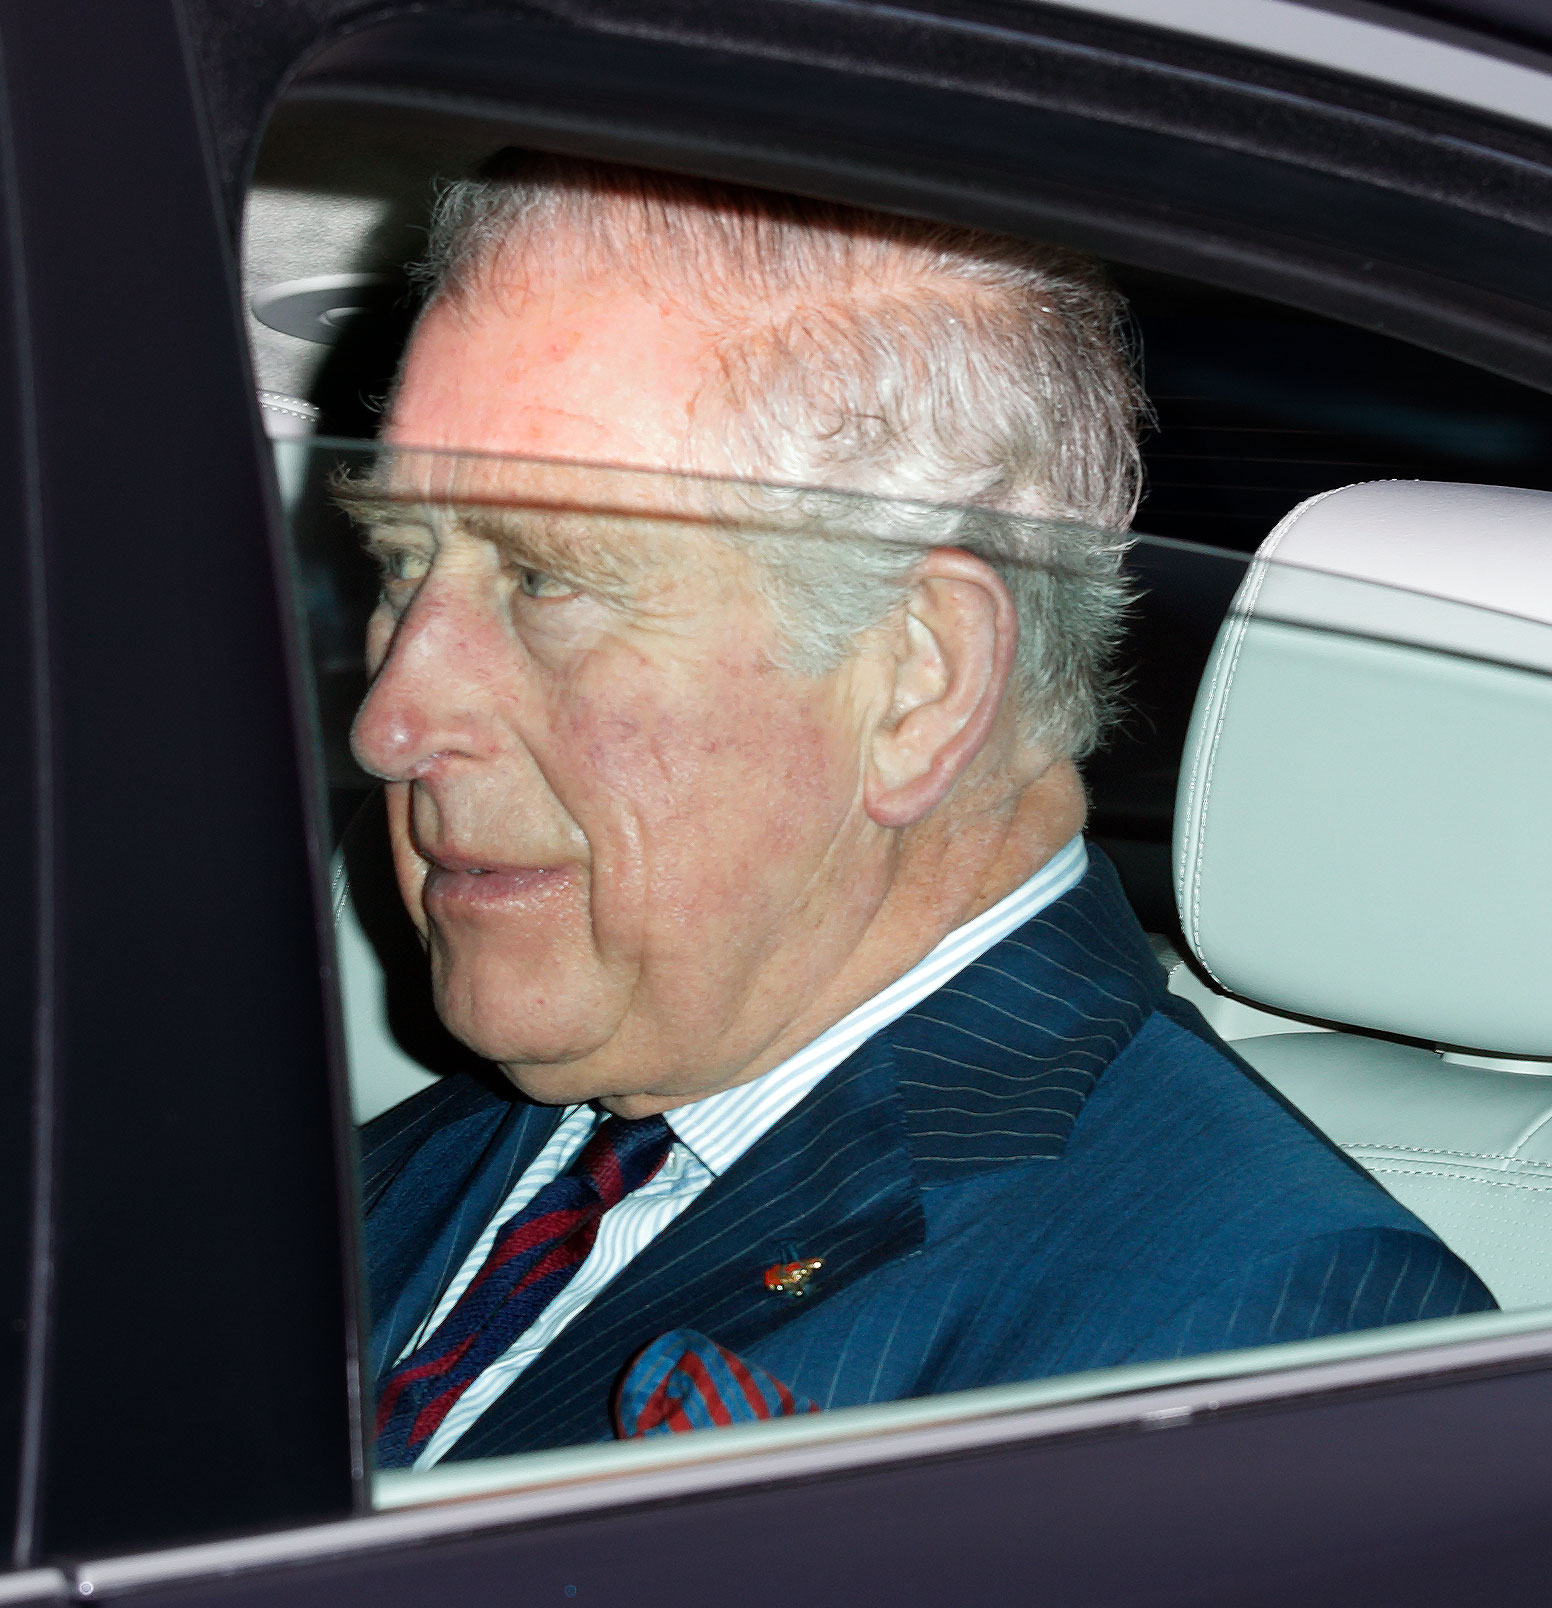 Prince Charles Spotted Without a Seatbelt After Prince Philip's Accident - Prince Charles, Prince of Wales attends a Christmas lunch for members of the Royal Family hosted by Queen Elizabeth II at Buckingham Palace on December 19, 2018